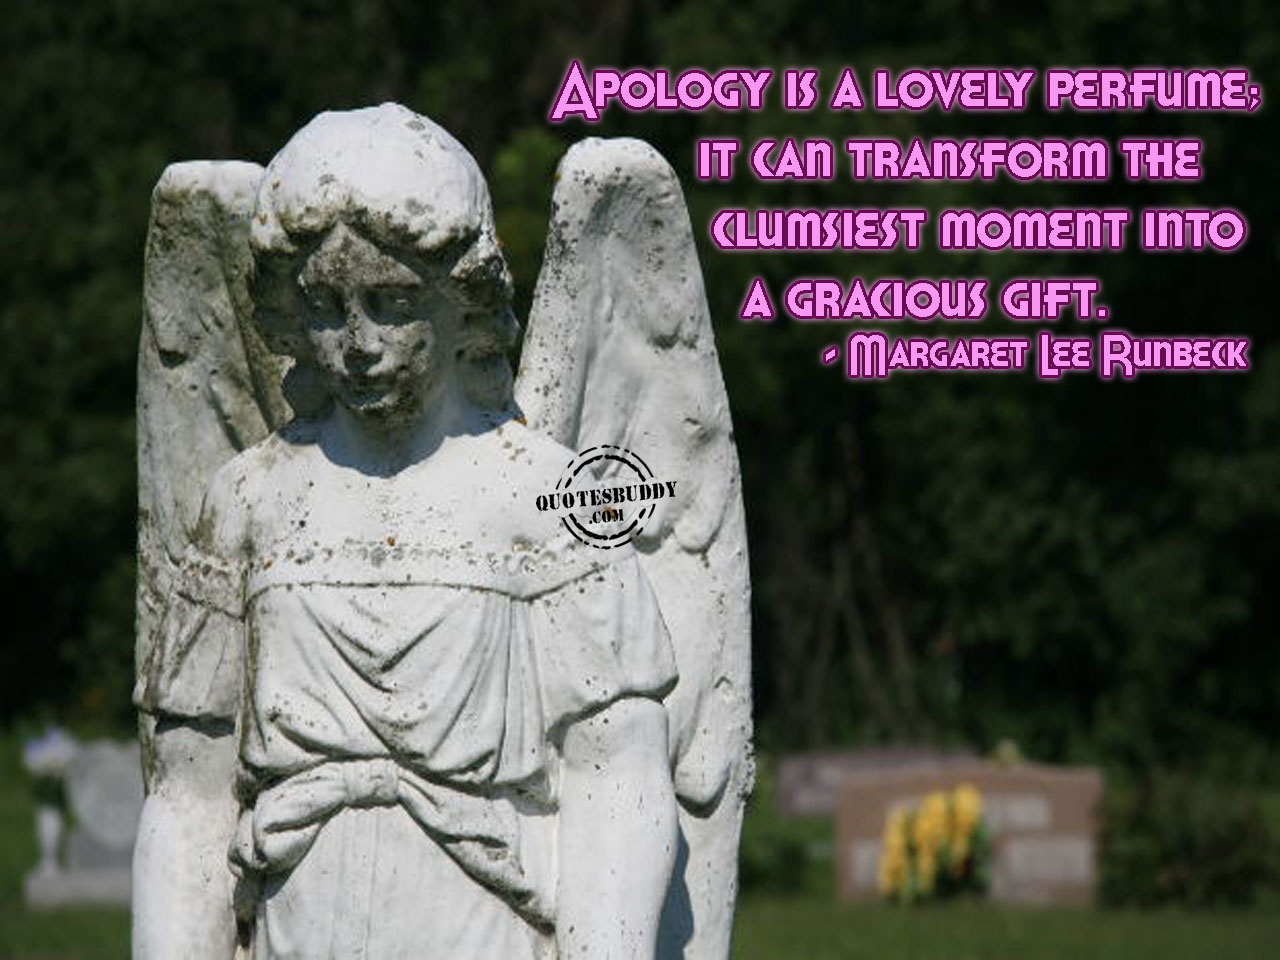 Apology Is A Lovely Perfume, It Can Transform The Clumsiest Moment Into A Gracious Gift ~ Apology Quote